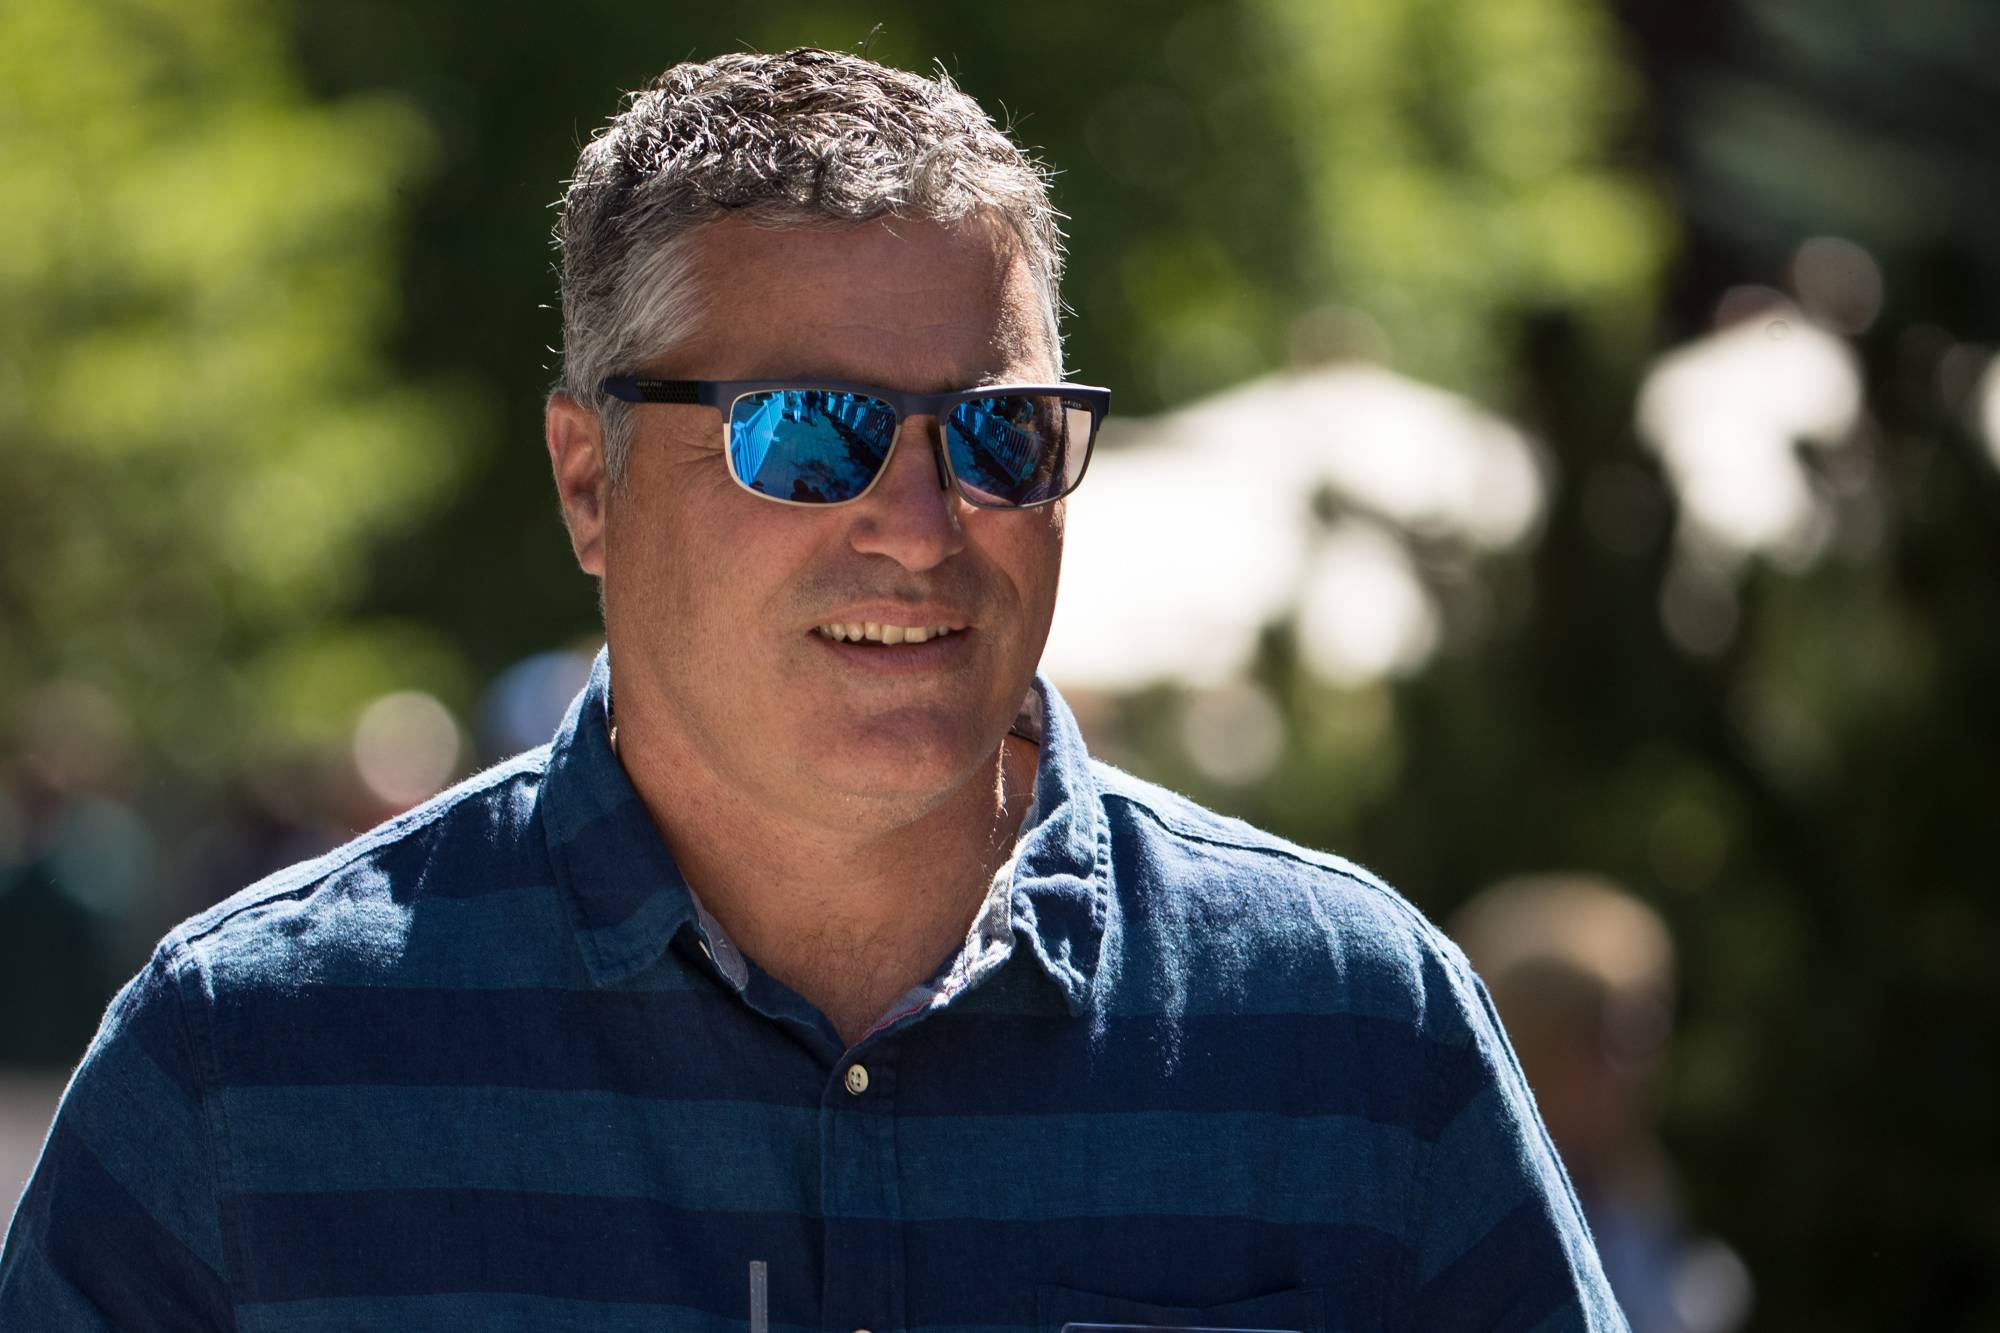 Cloudera CEO Tom Reilly talks Hortonworks merger, IBM and Red Hat deal, and AI hype.